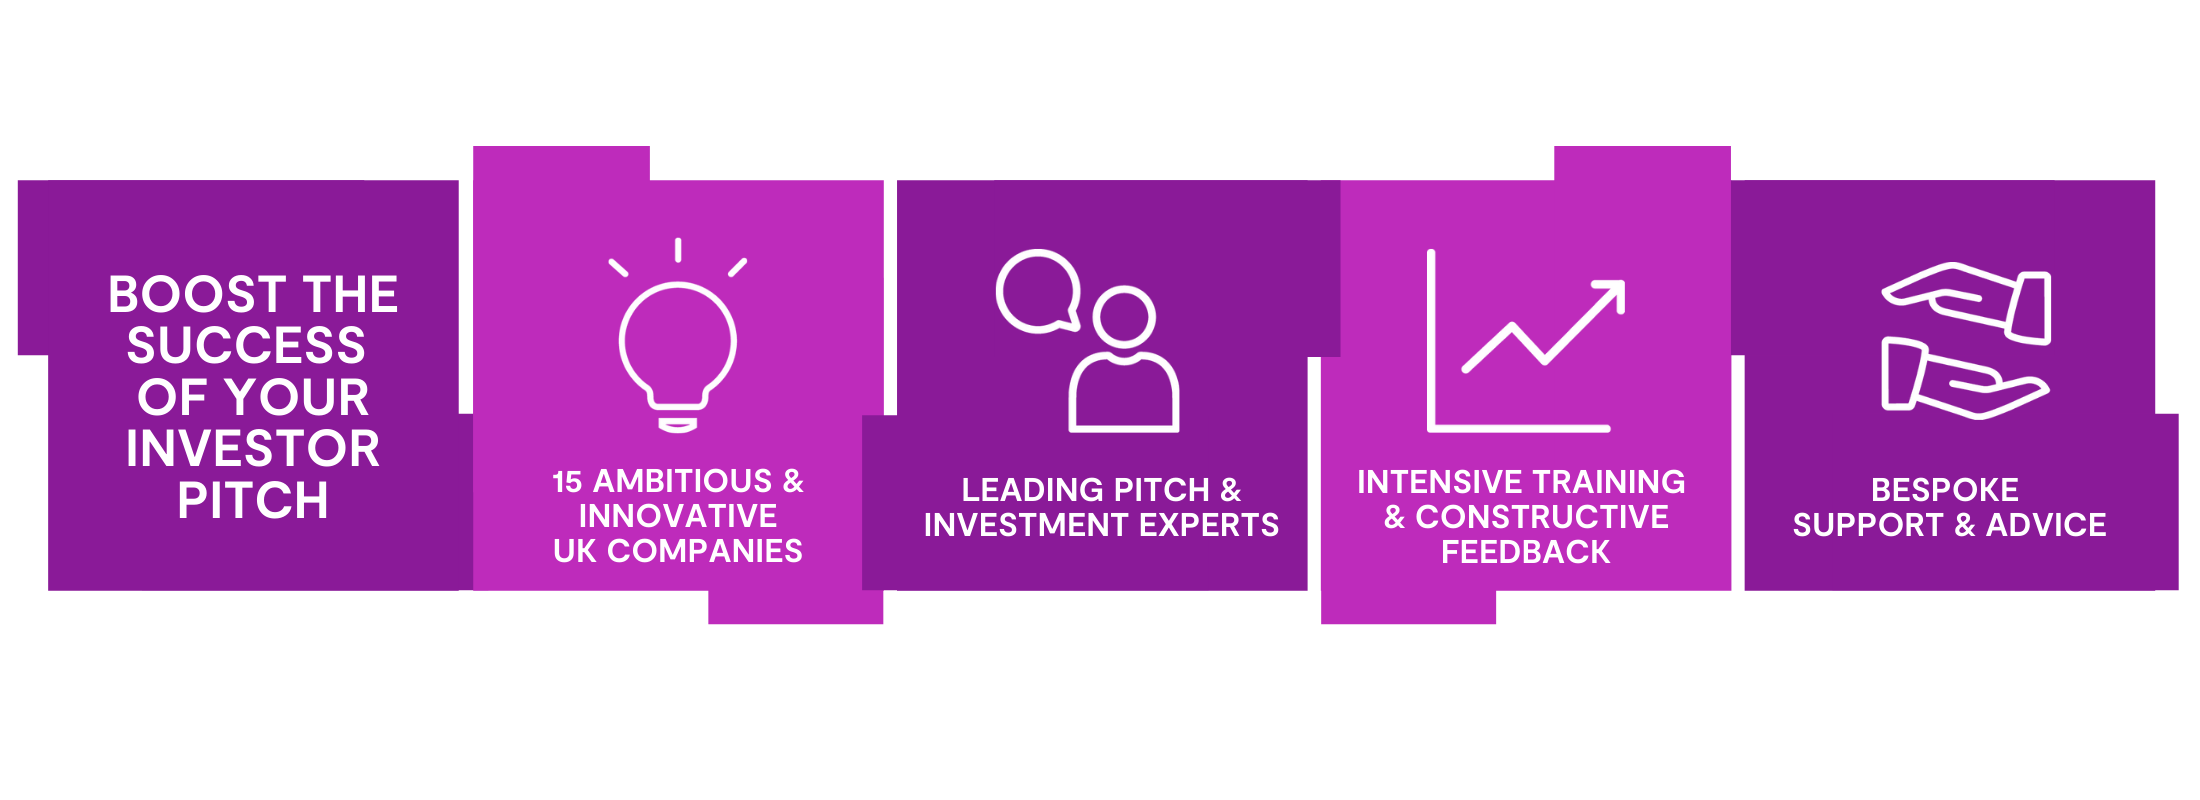 Boost the success of your investor pitch - Pitchfest graphic